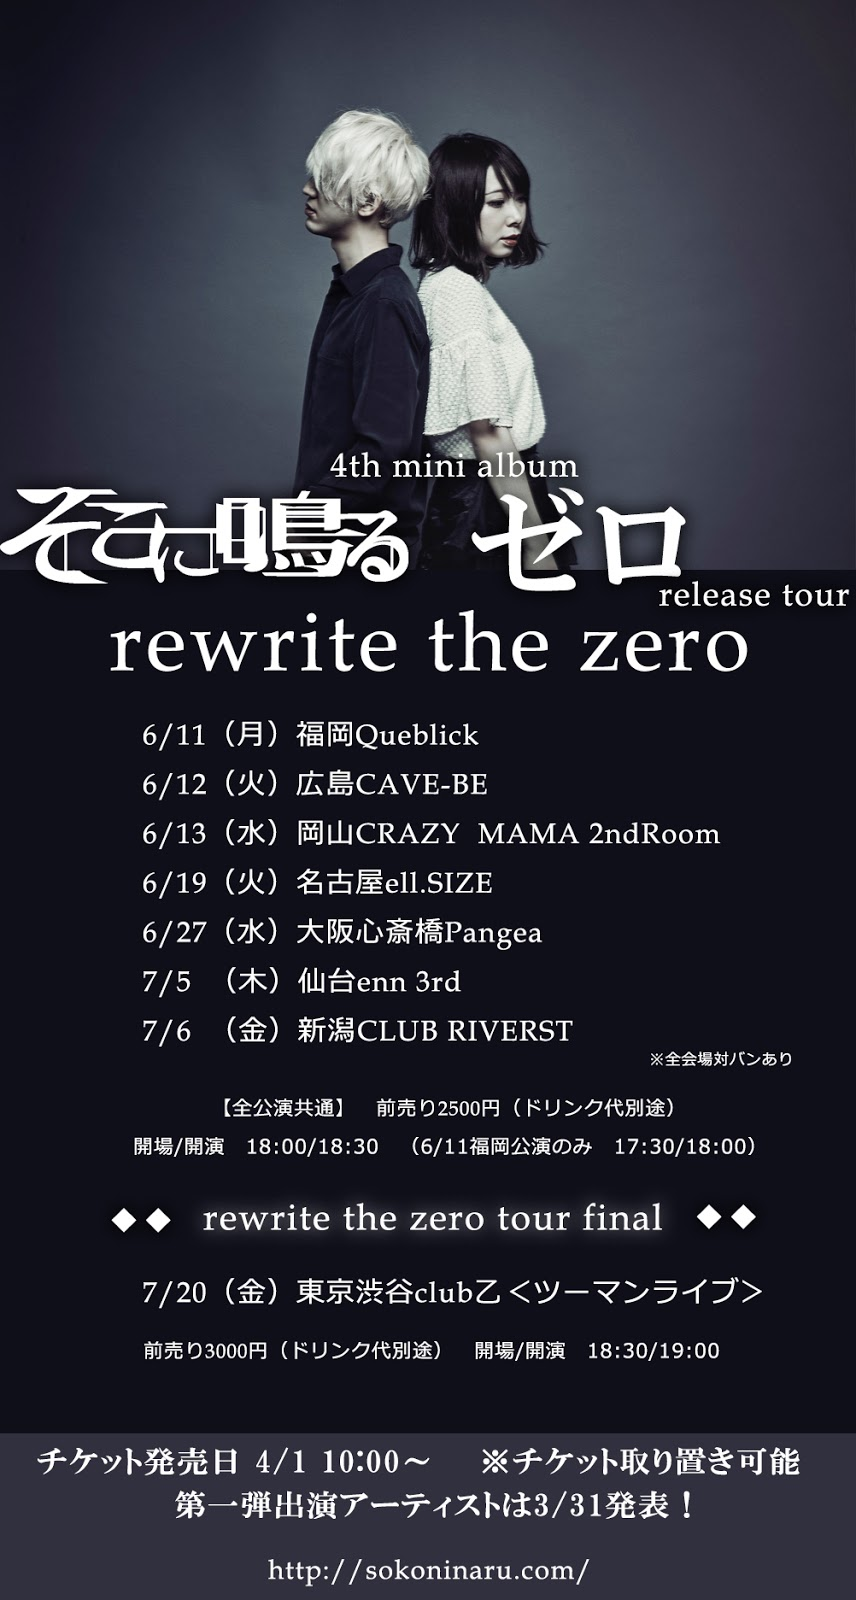 Sokoninaru - REWRITE THE ZERO TOUR